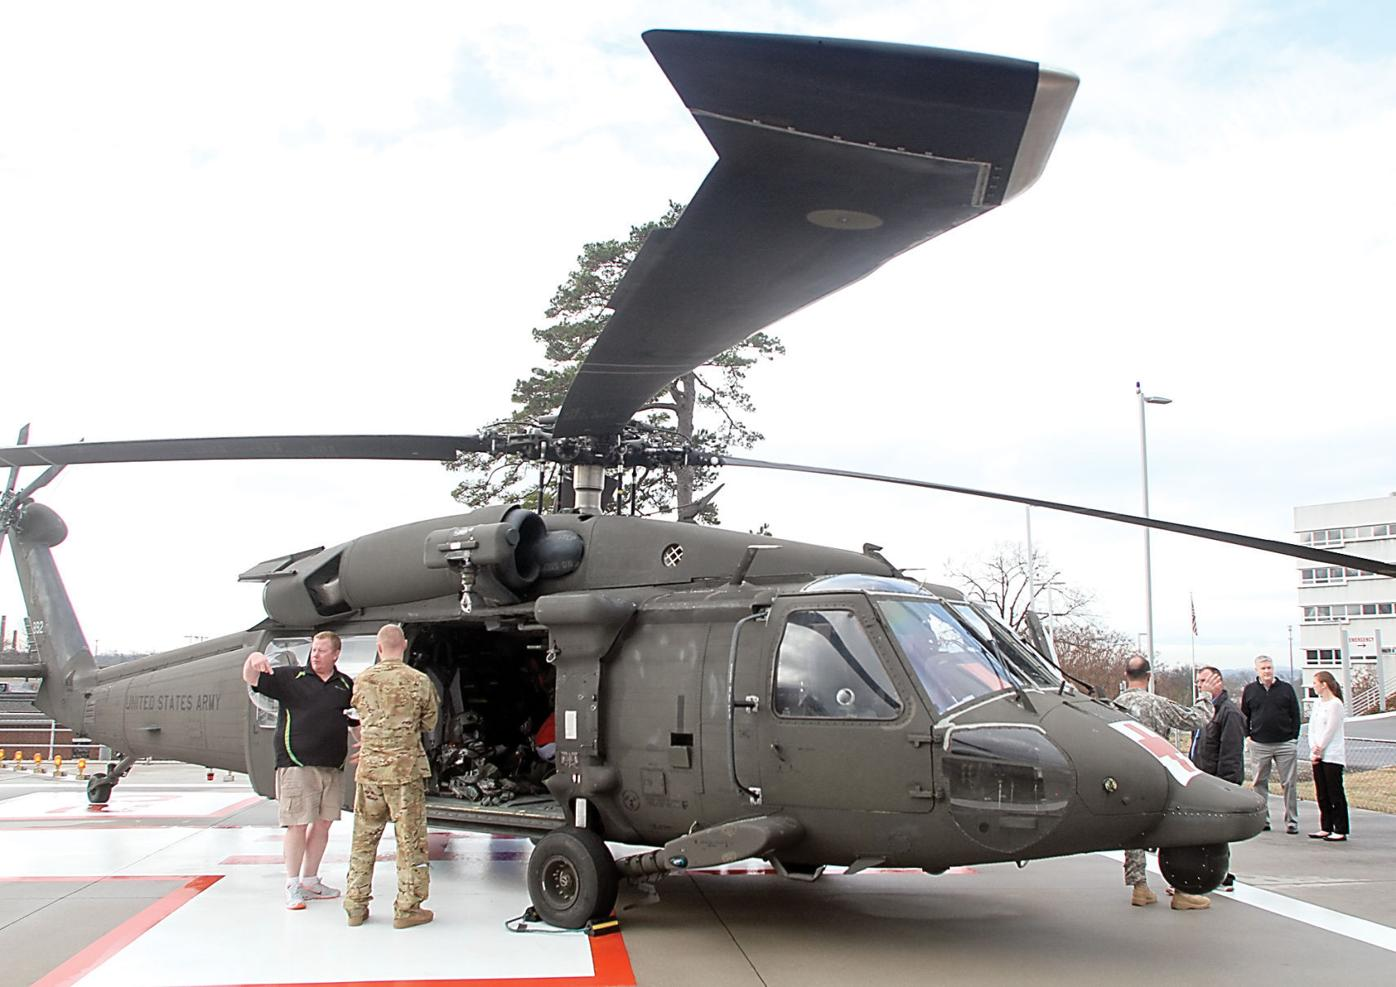 Blount Memorial Hospital employees check out the Black Hawk helicopter at the hospital